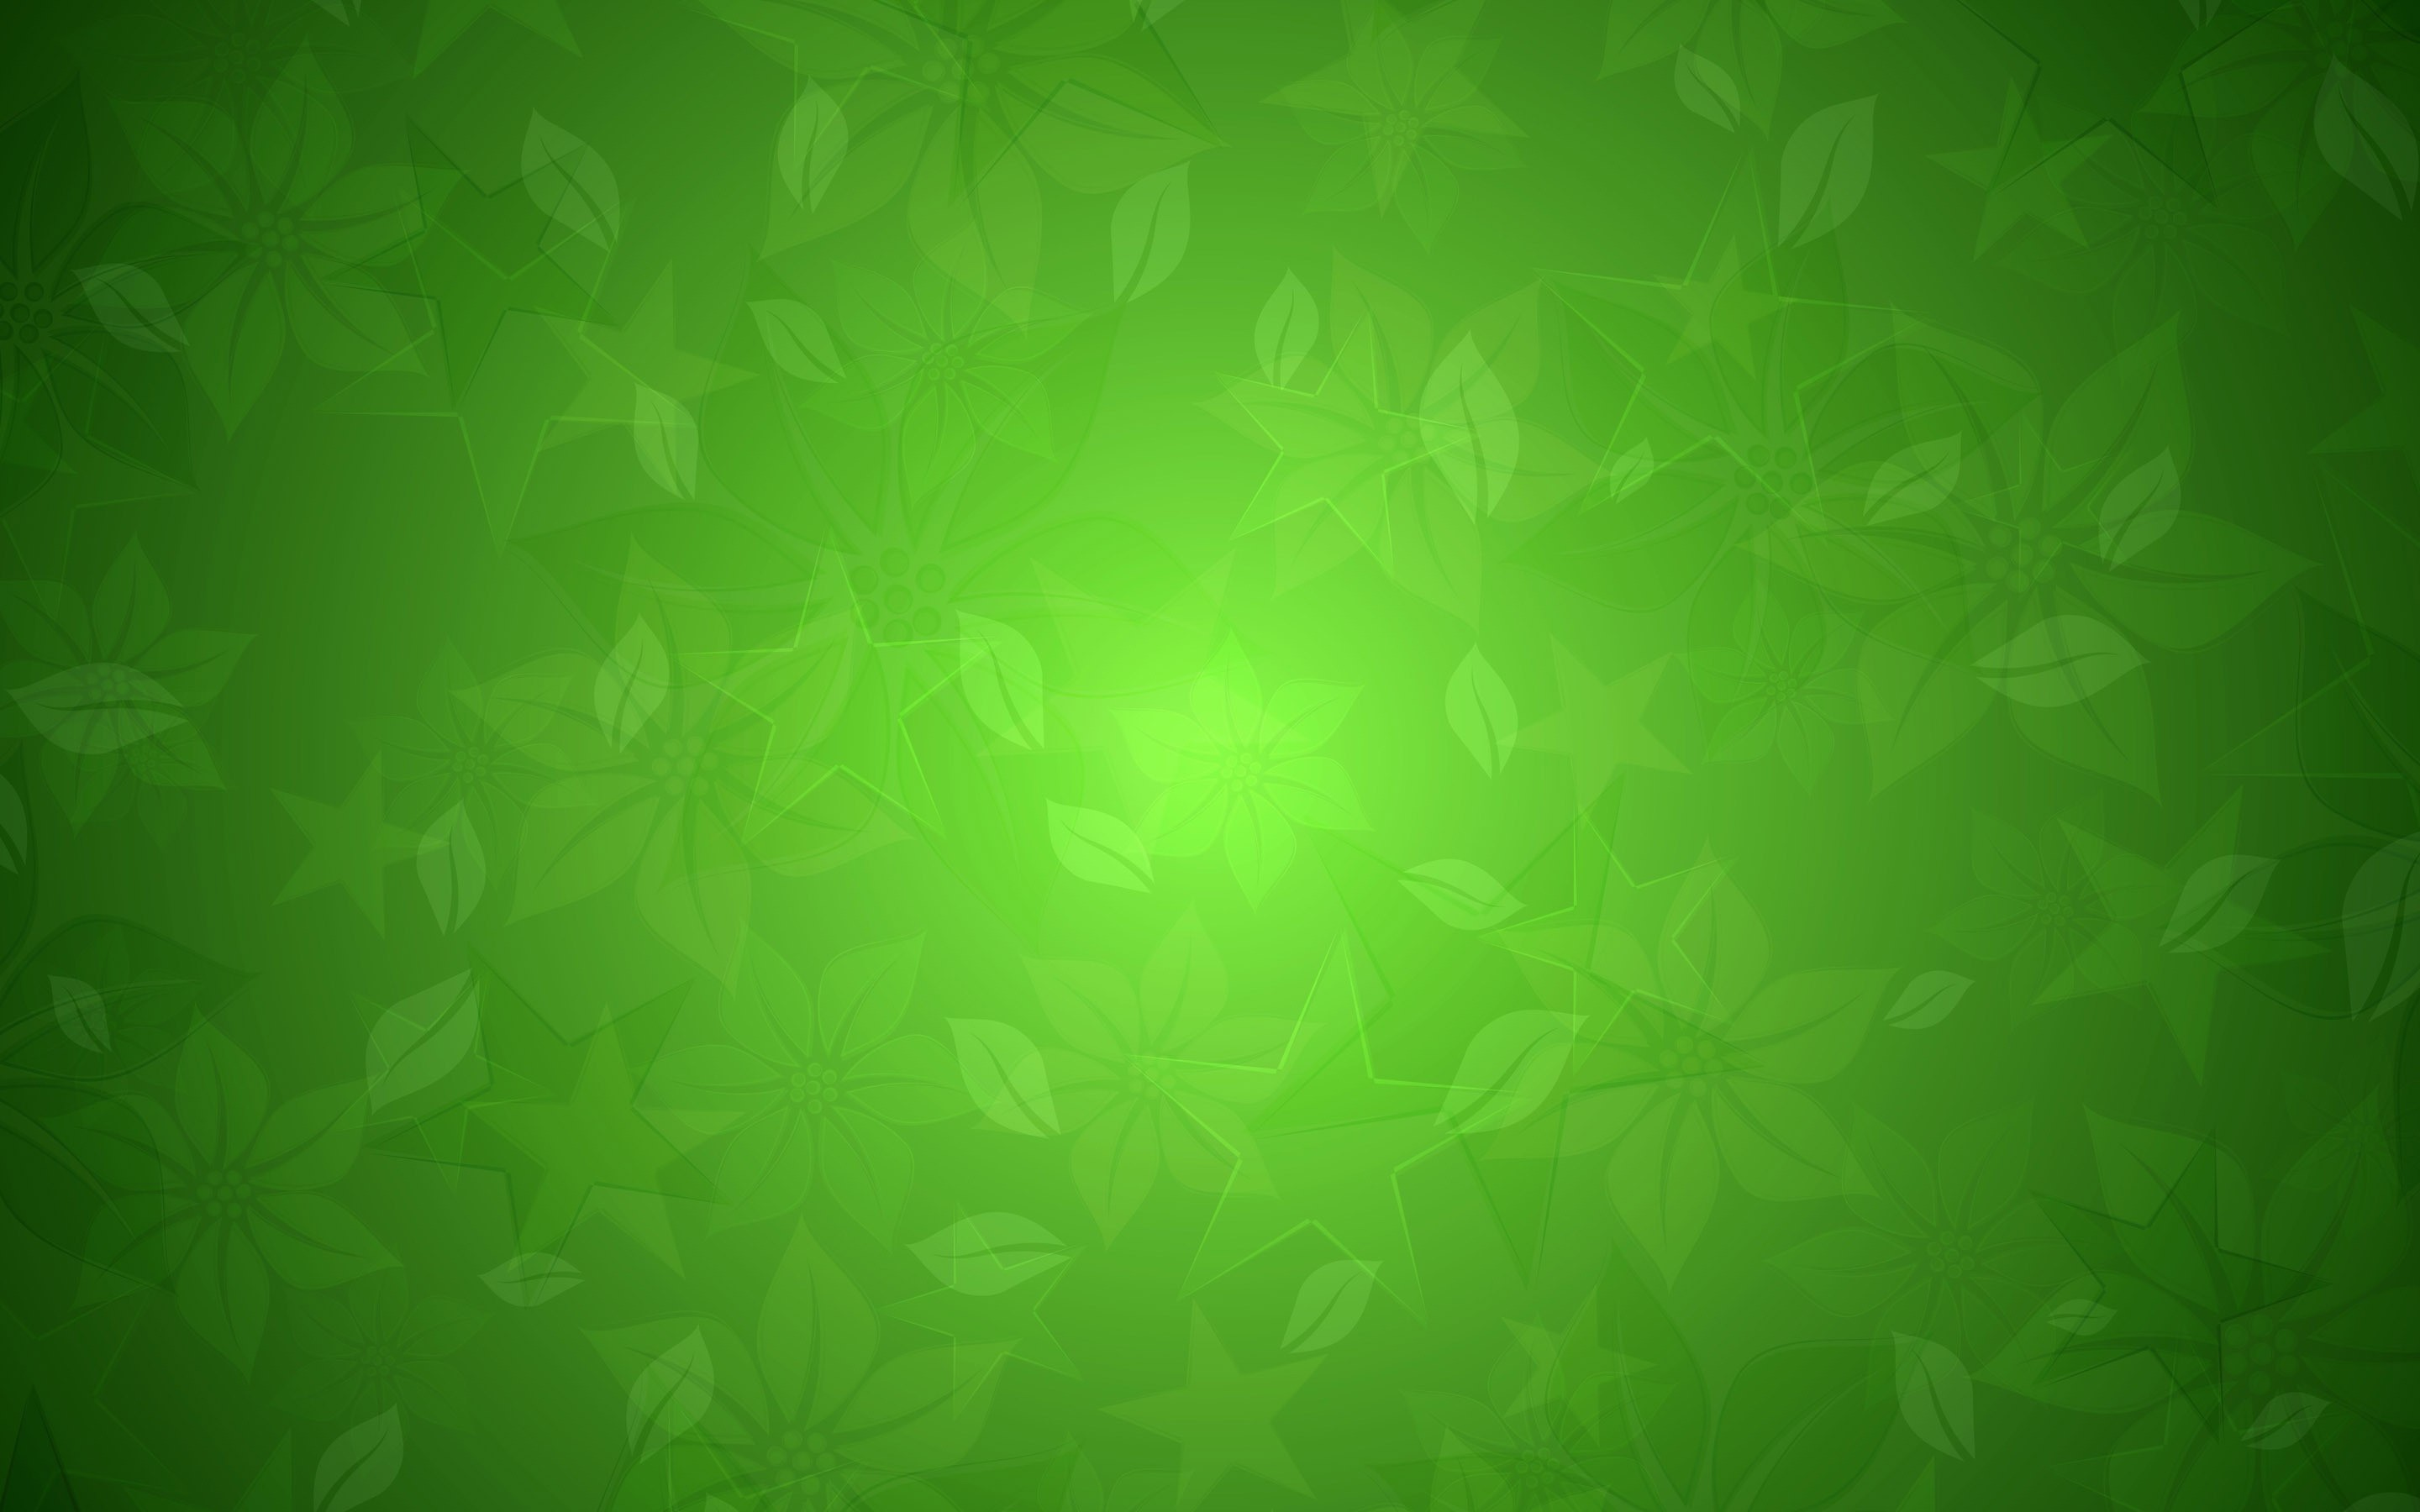 Green background images Download free cool High Resolution